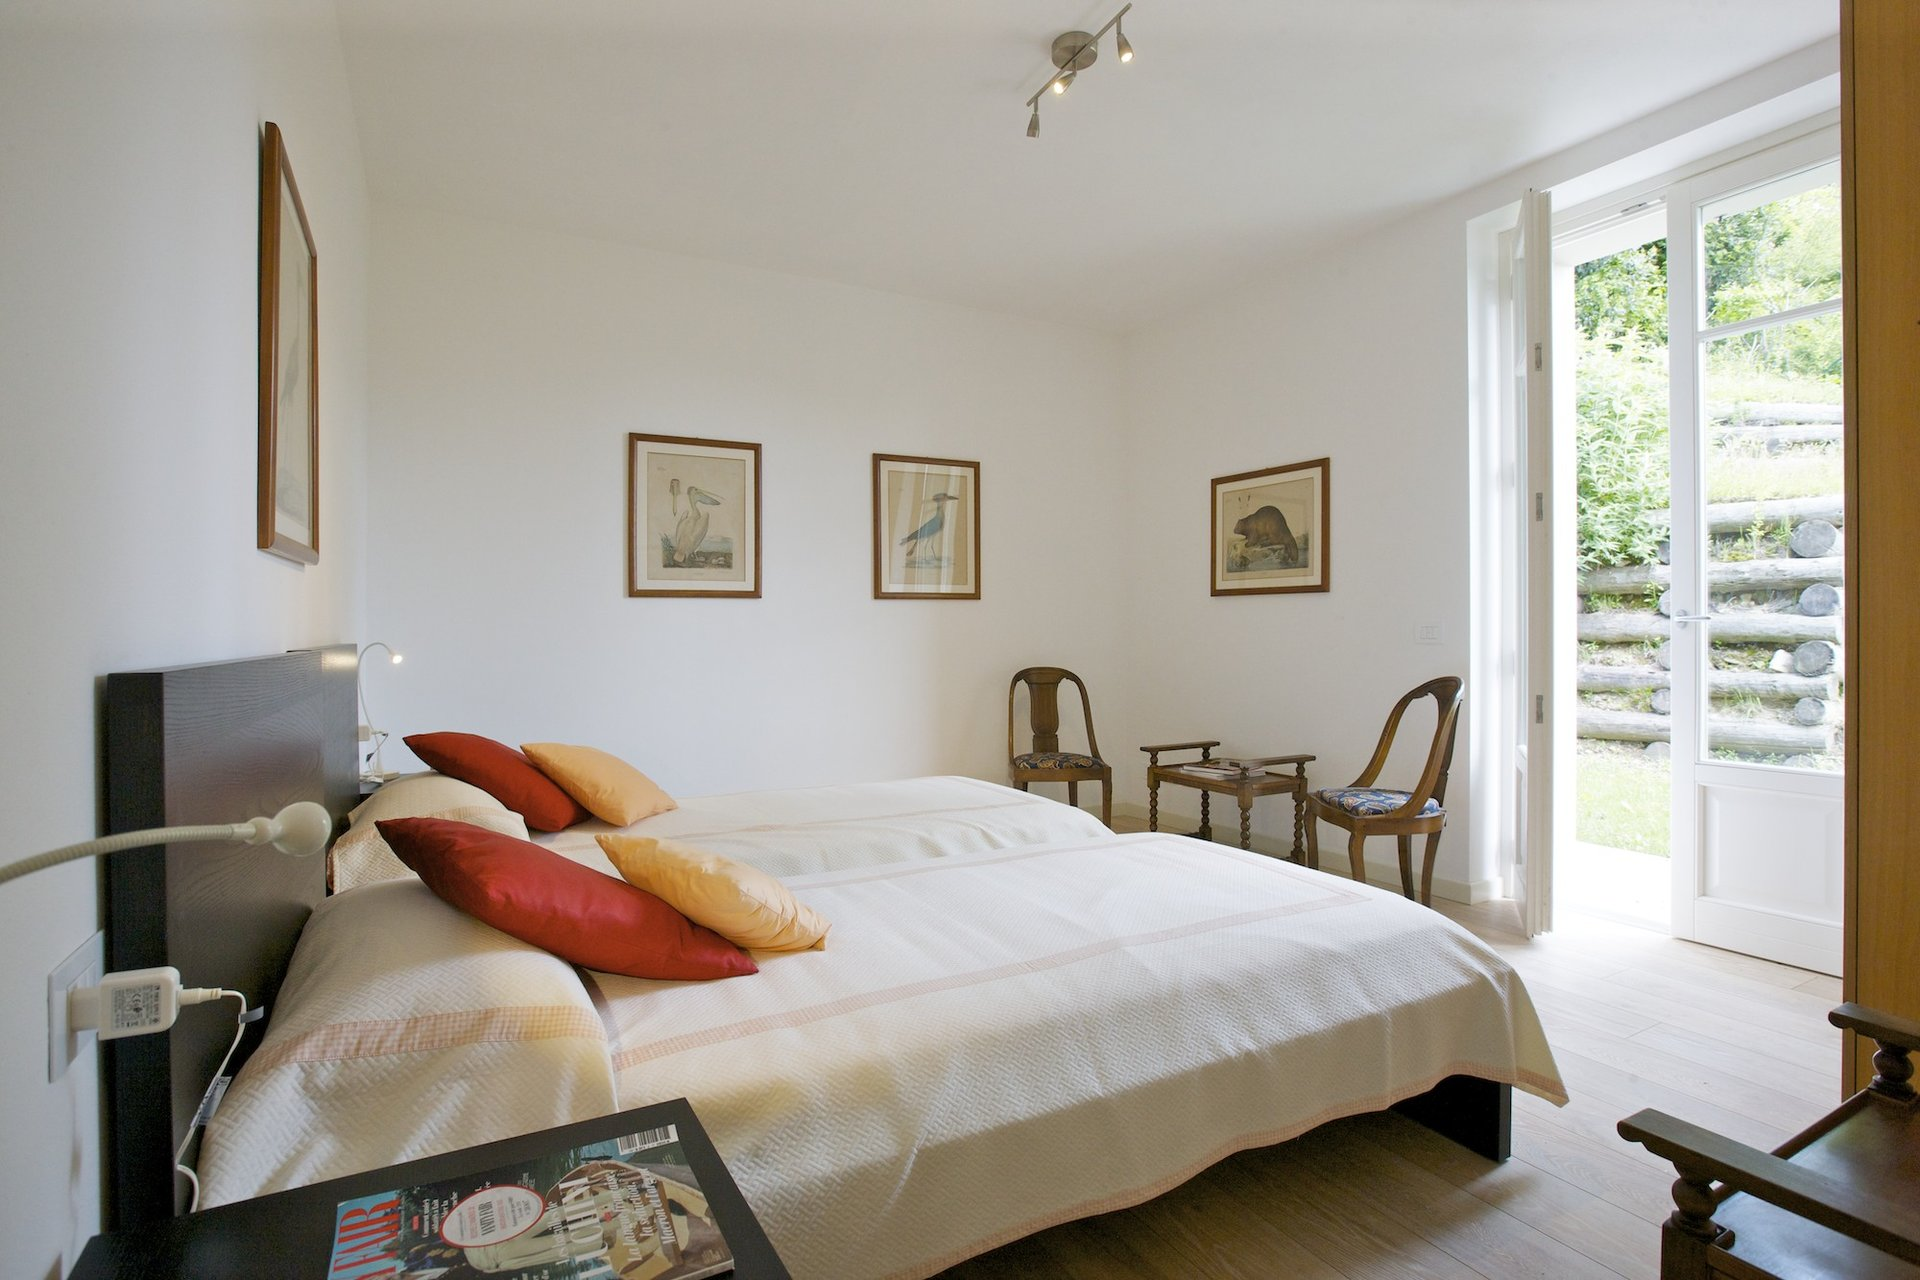 Luxury new villa for sale in Verbania - guest bedroom